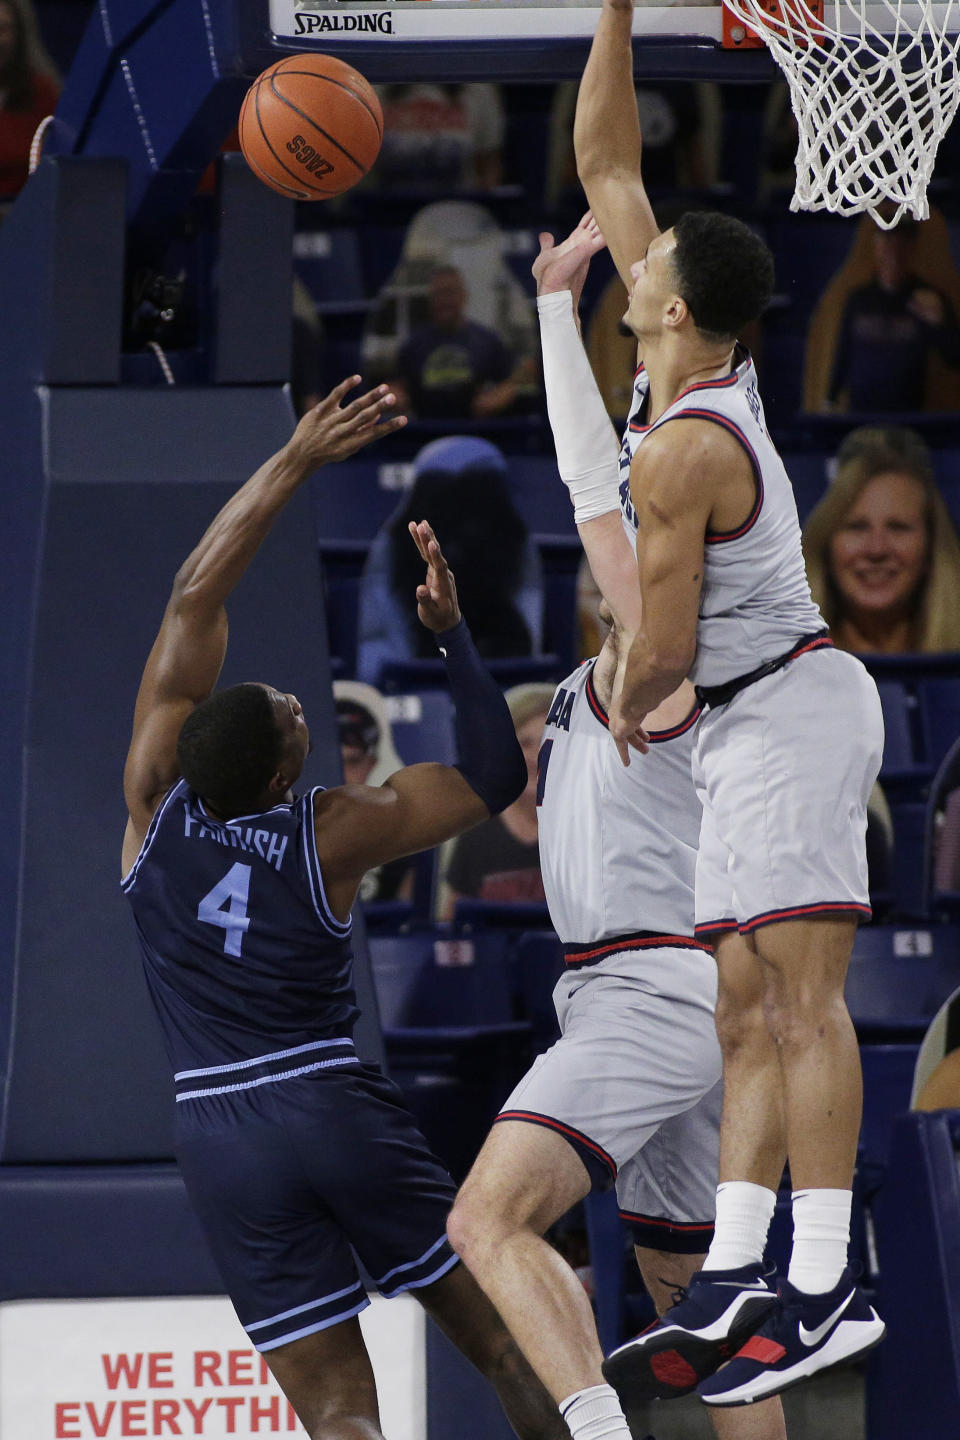 San Diego forward Josh Parrish, left, shoots while pressured by Gonzaga guard Jalen Suggs, right, and forward Corey Kispert during the first half of an NCAA college basketball game in Spokane, Wash., Saturday, Feb. 20, 2021. (AP Photo/Young Kwak)